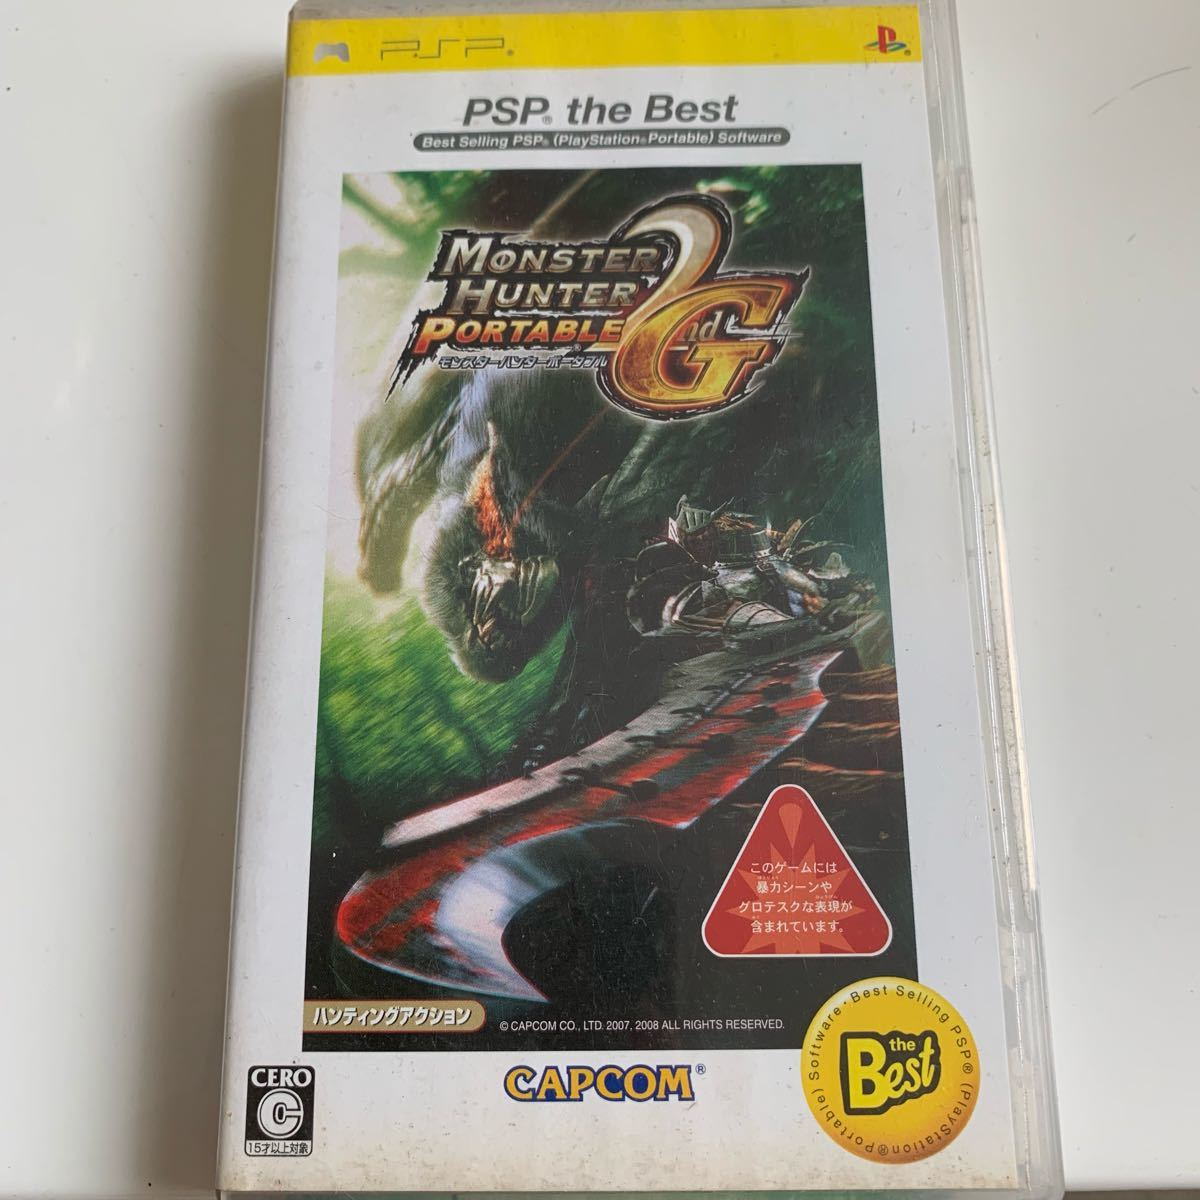 [PSP the Best]モンスターハンターポータブル 2nd G